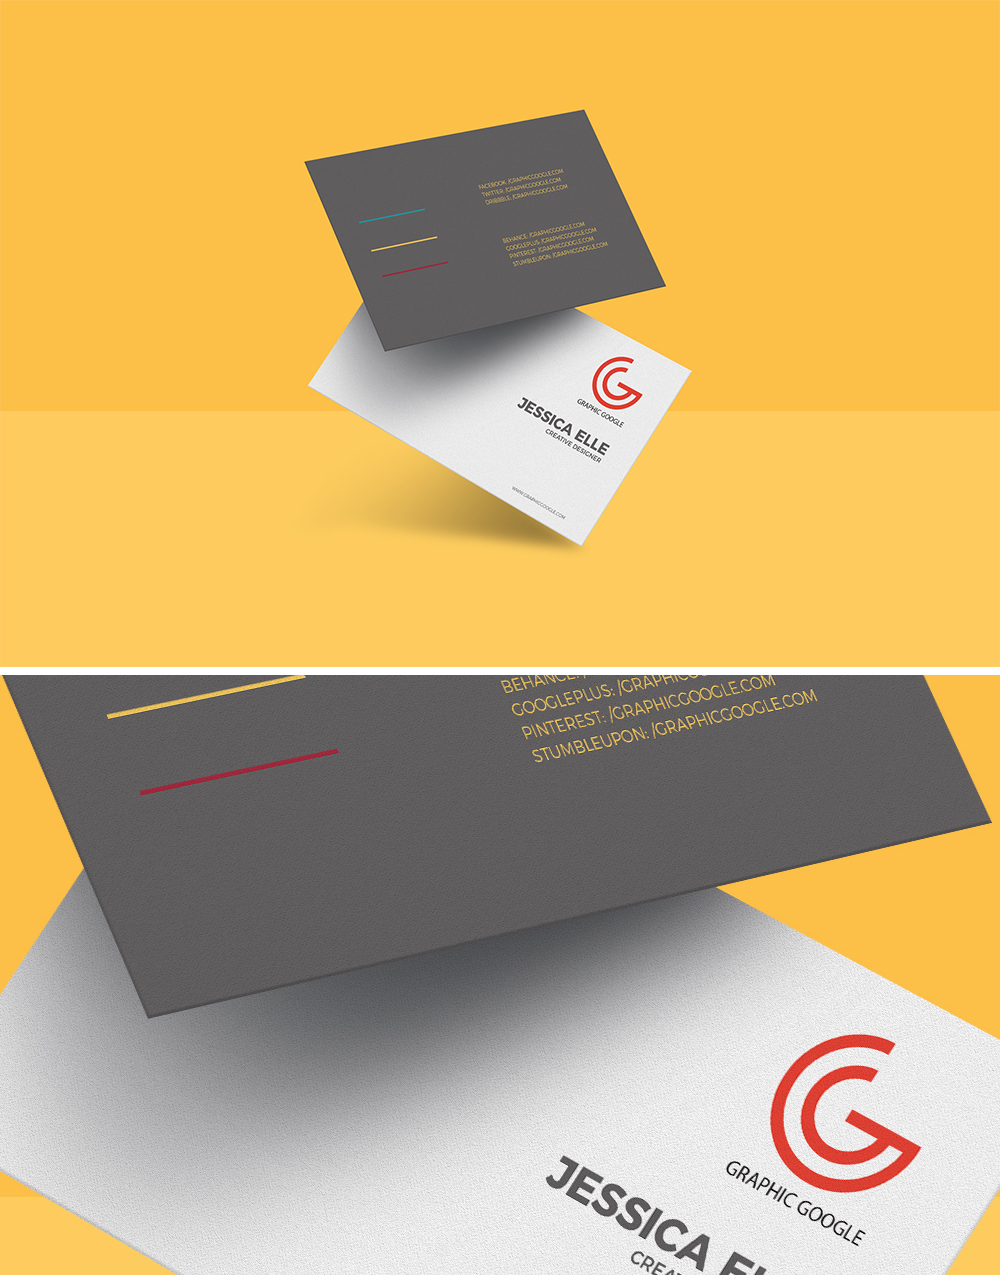 business card presentation template psd - free floating business card mockup template